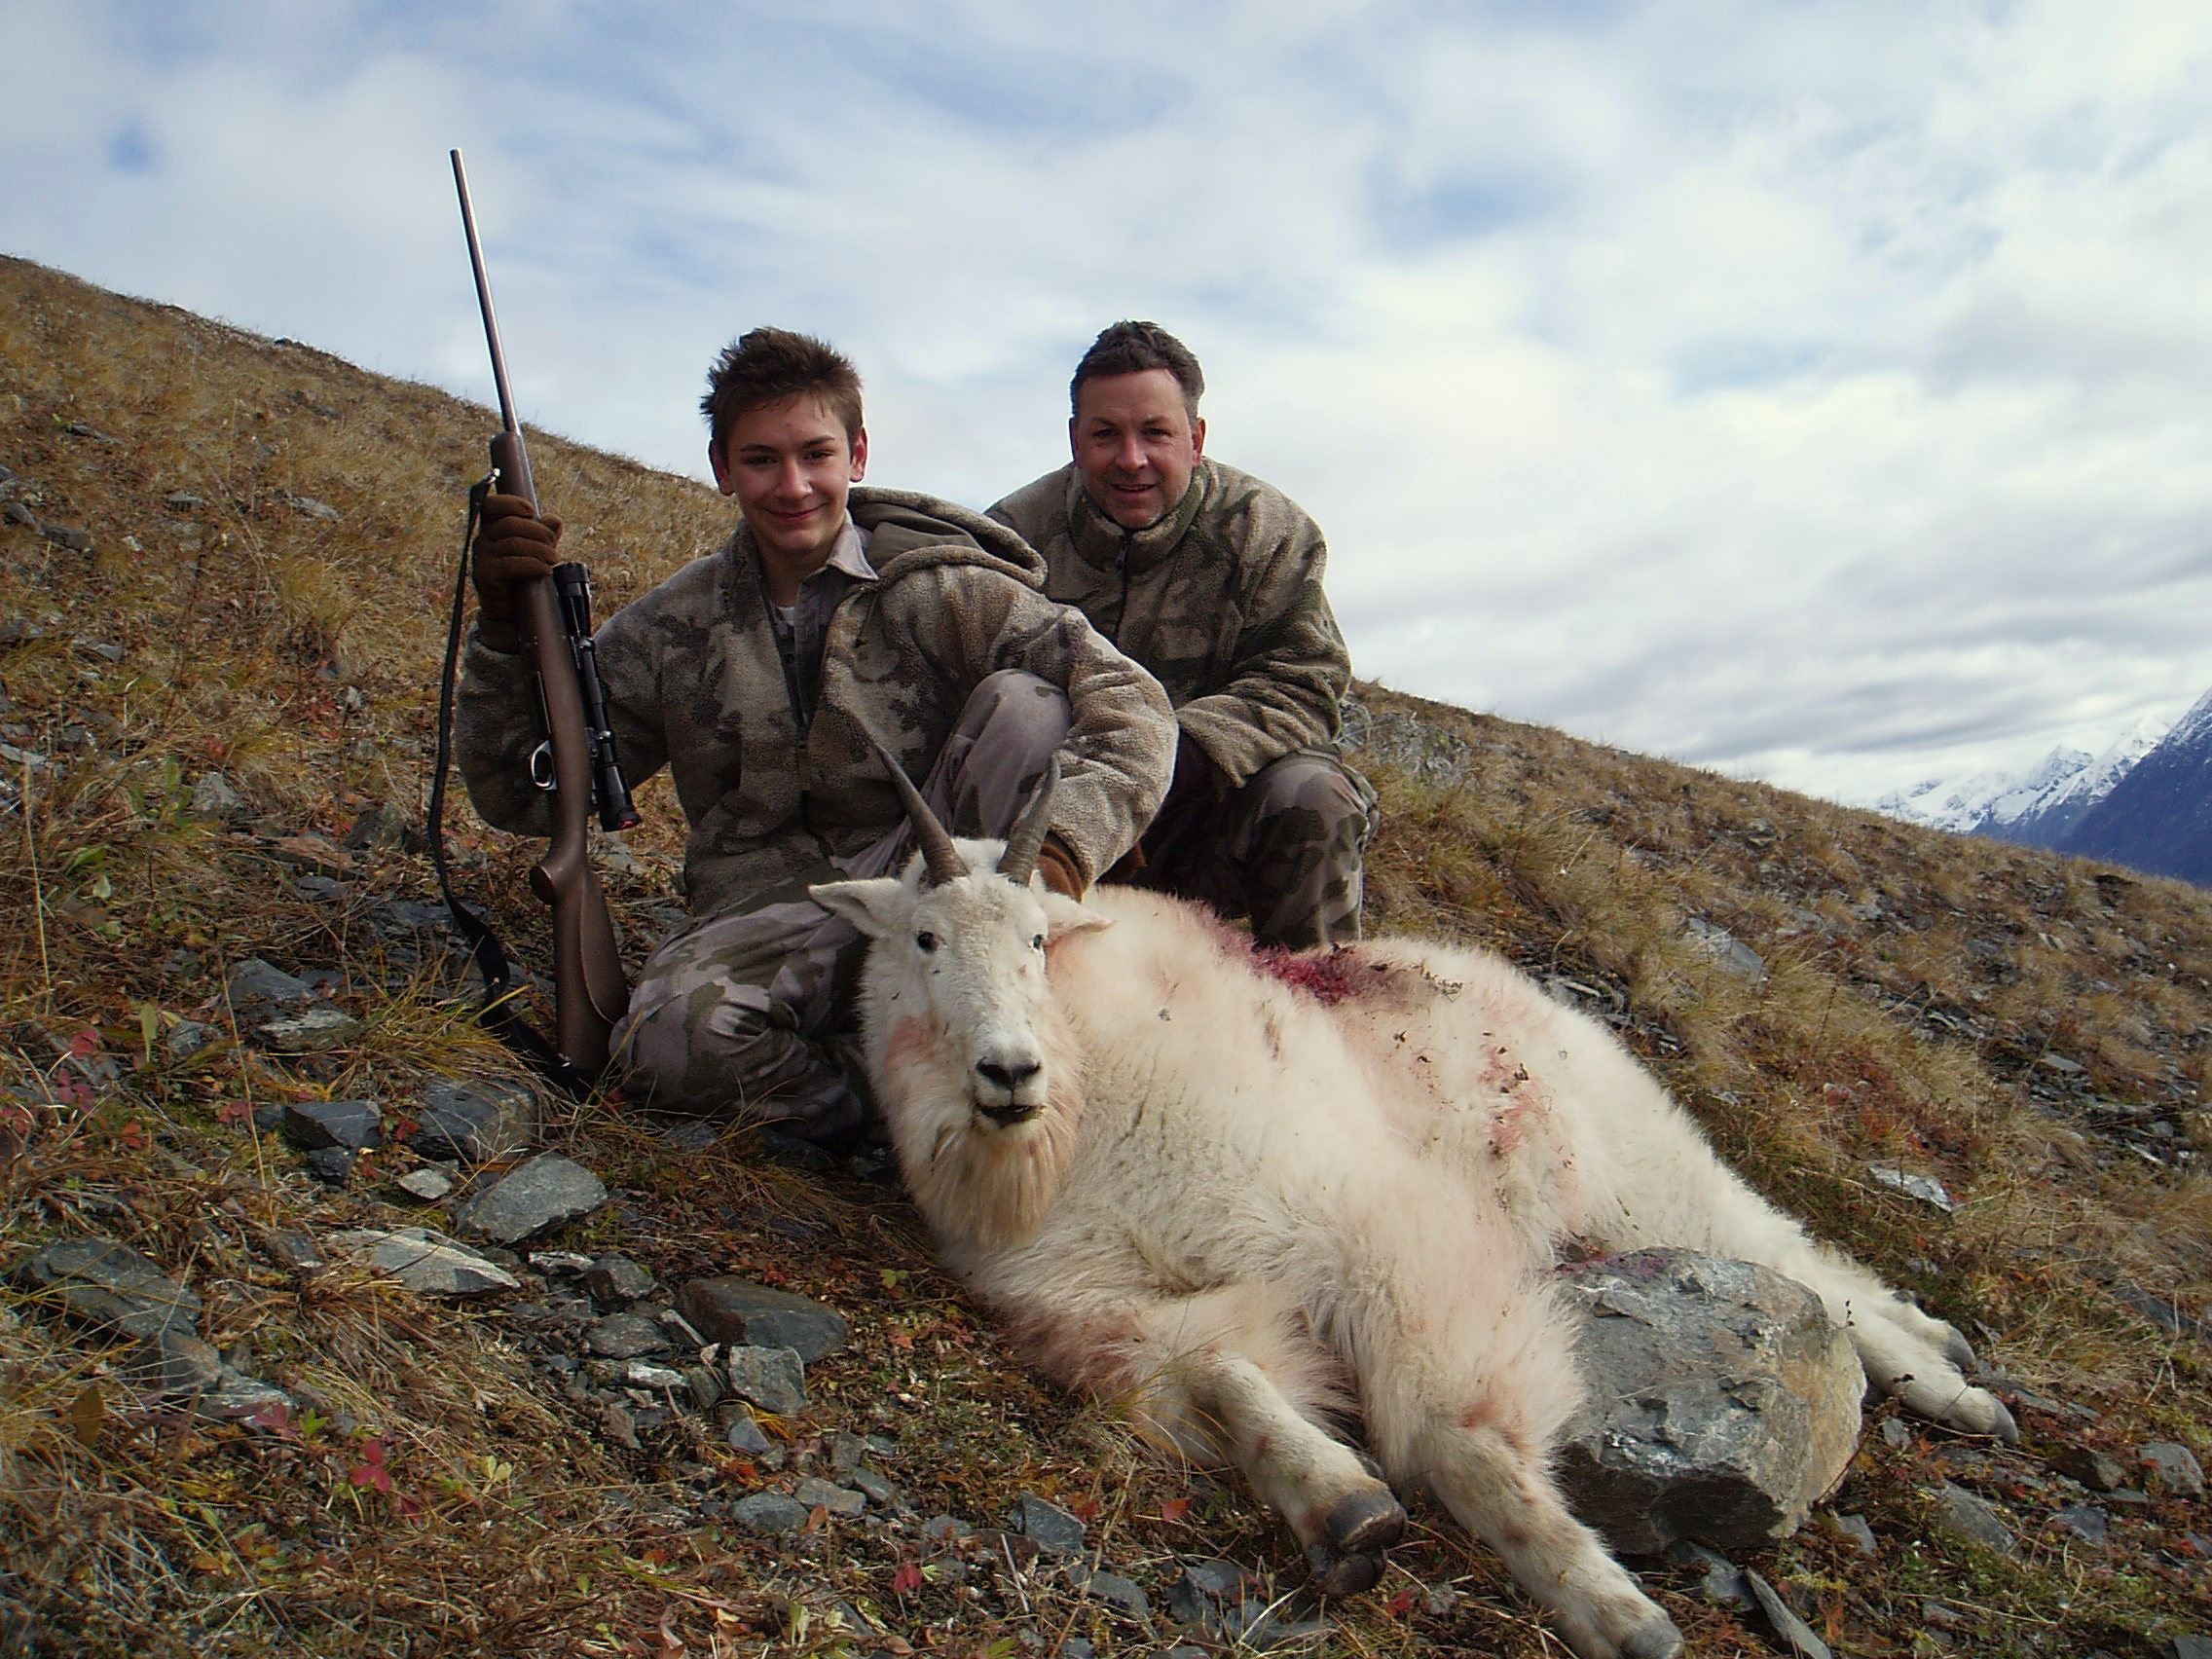 Nathan and his dad. What a great hunt!